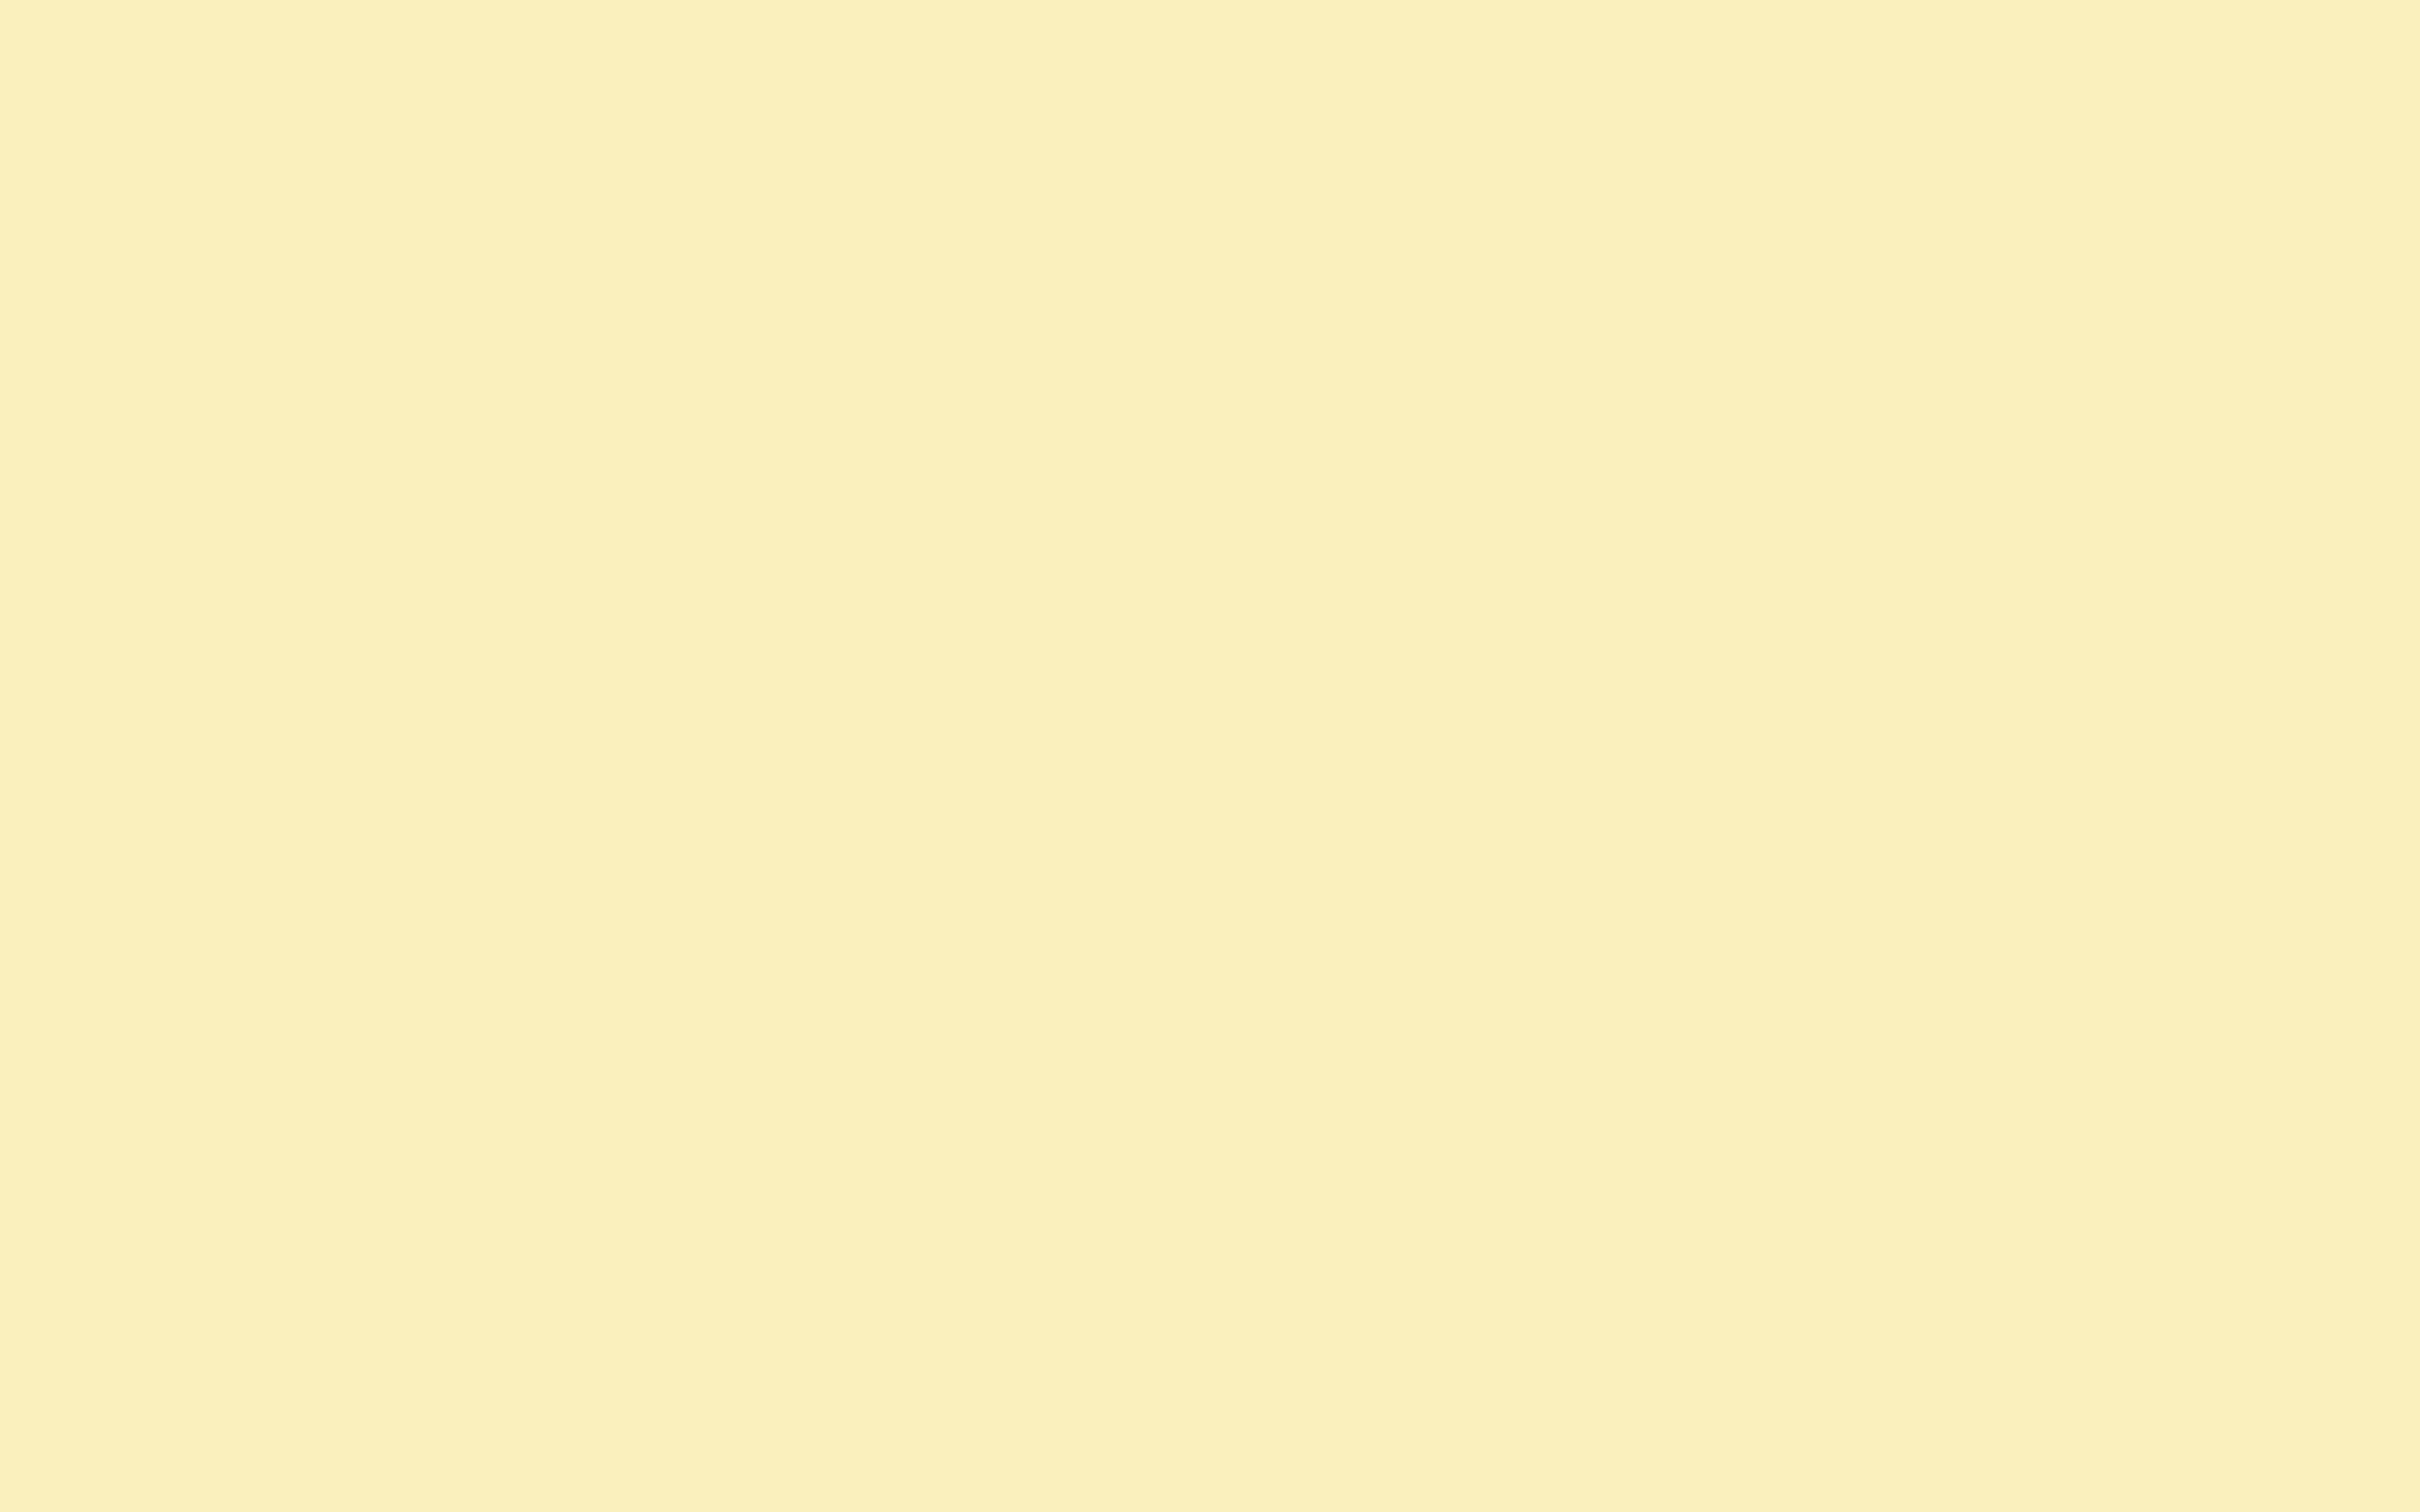 2560x1600 Blond Solid Color Background